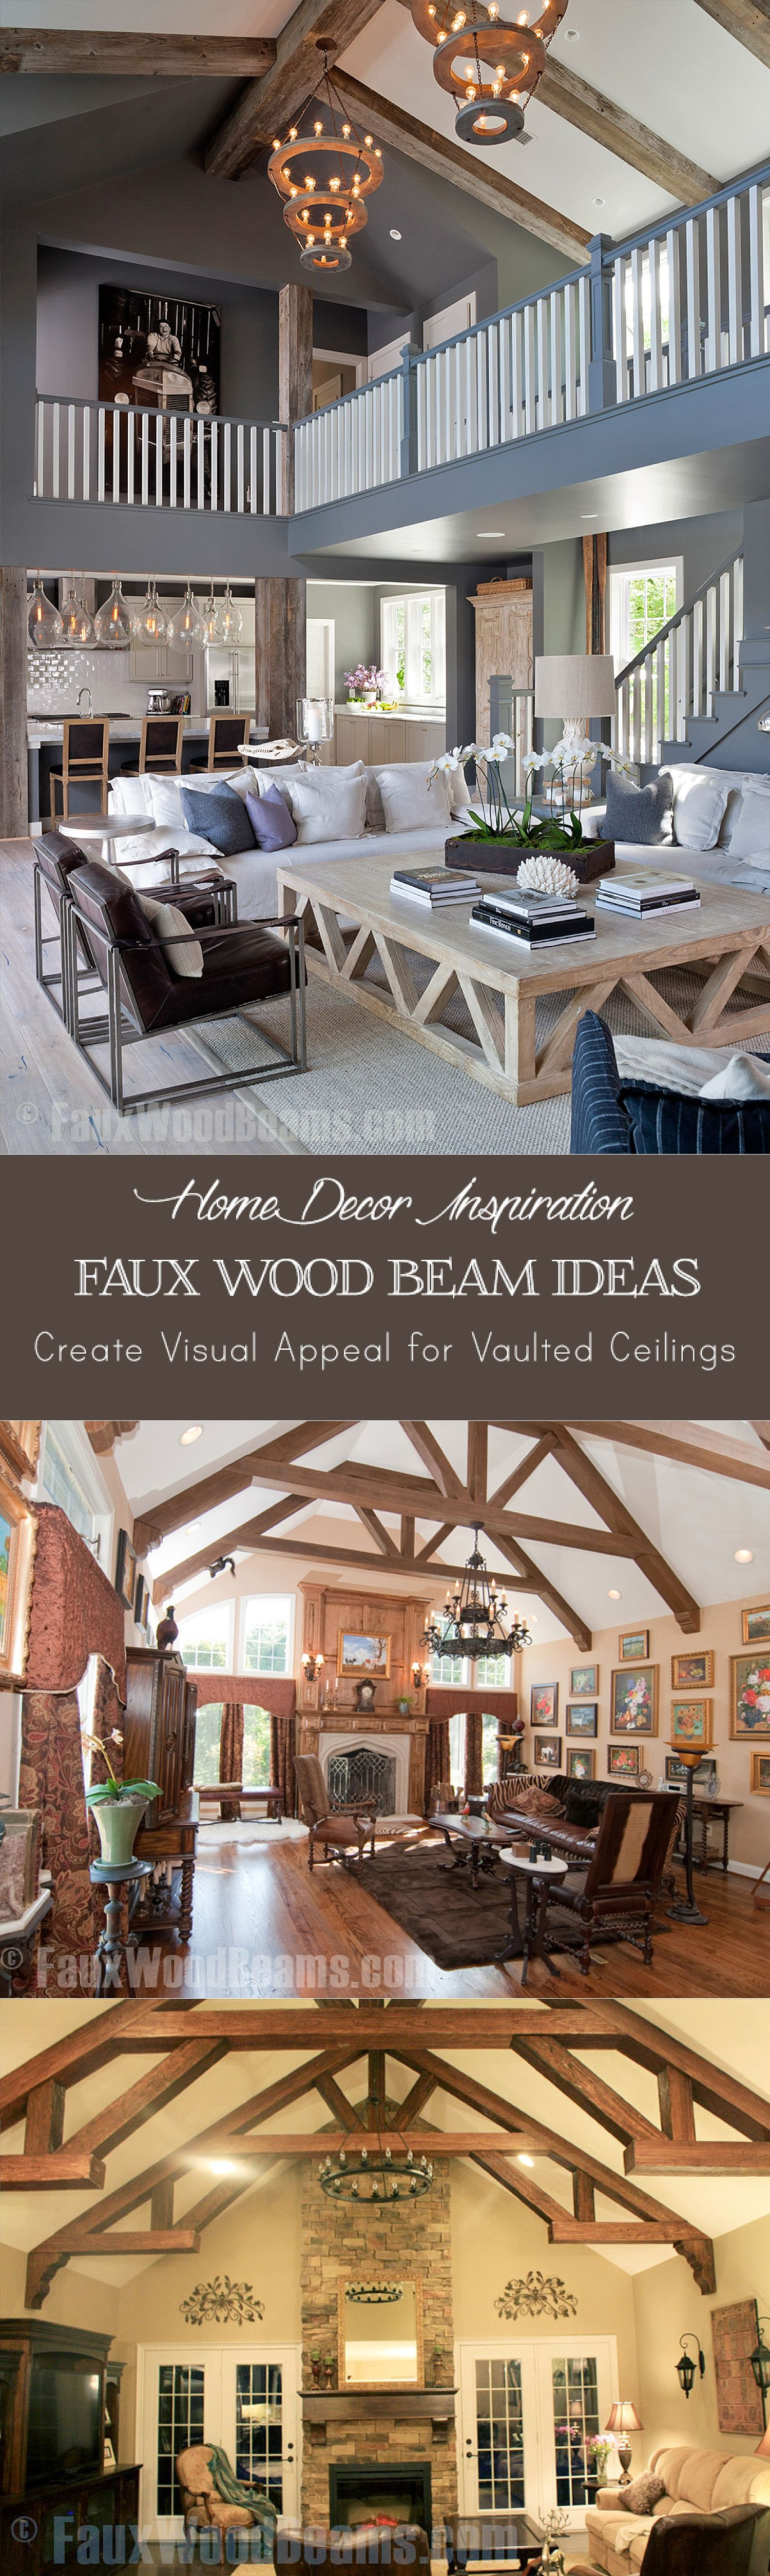 faux-wood-beam-inspiration